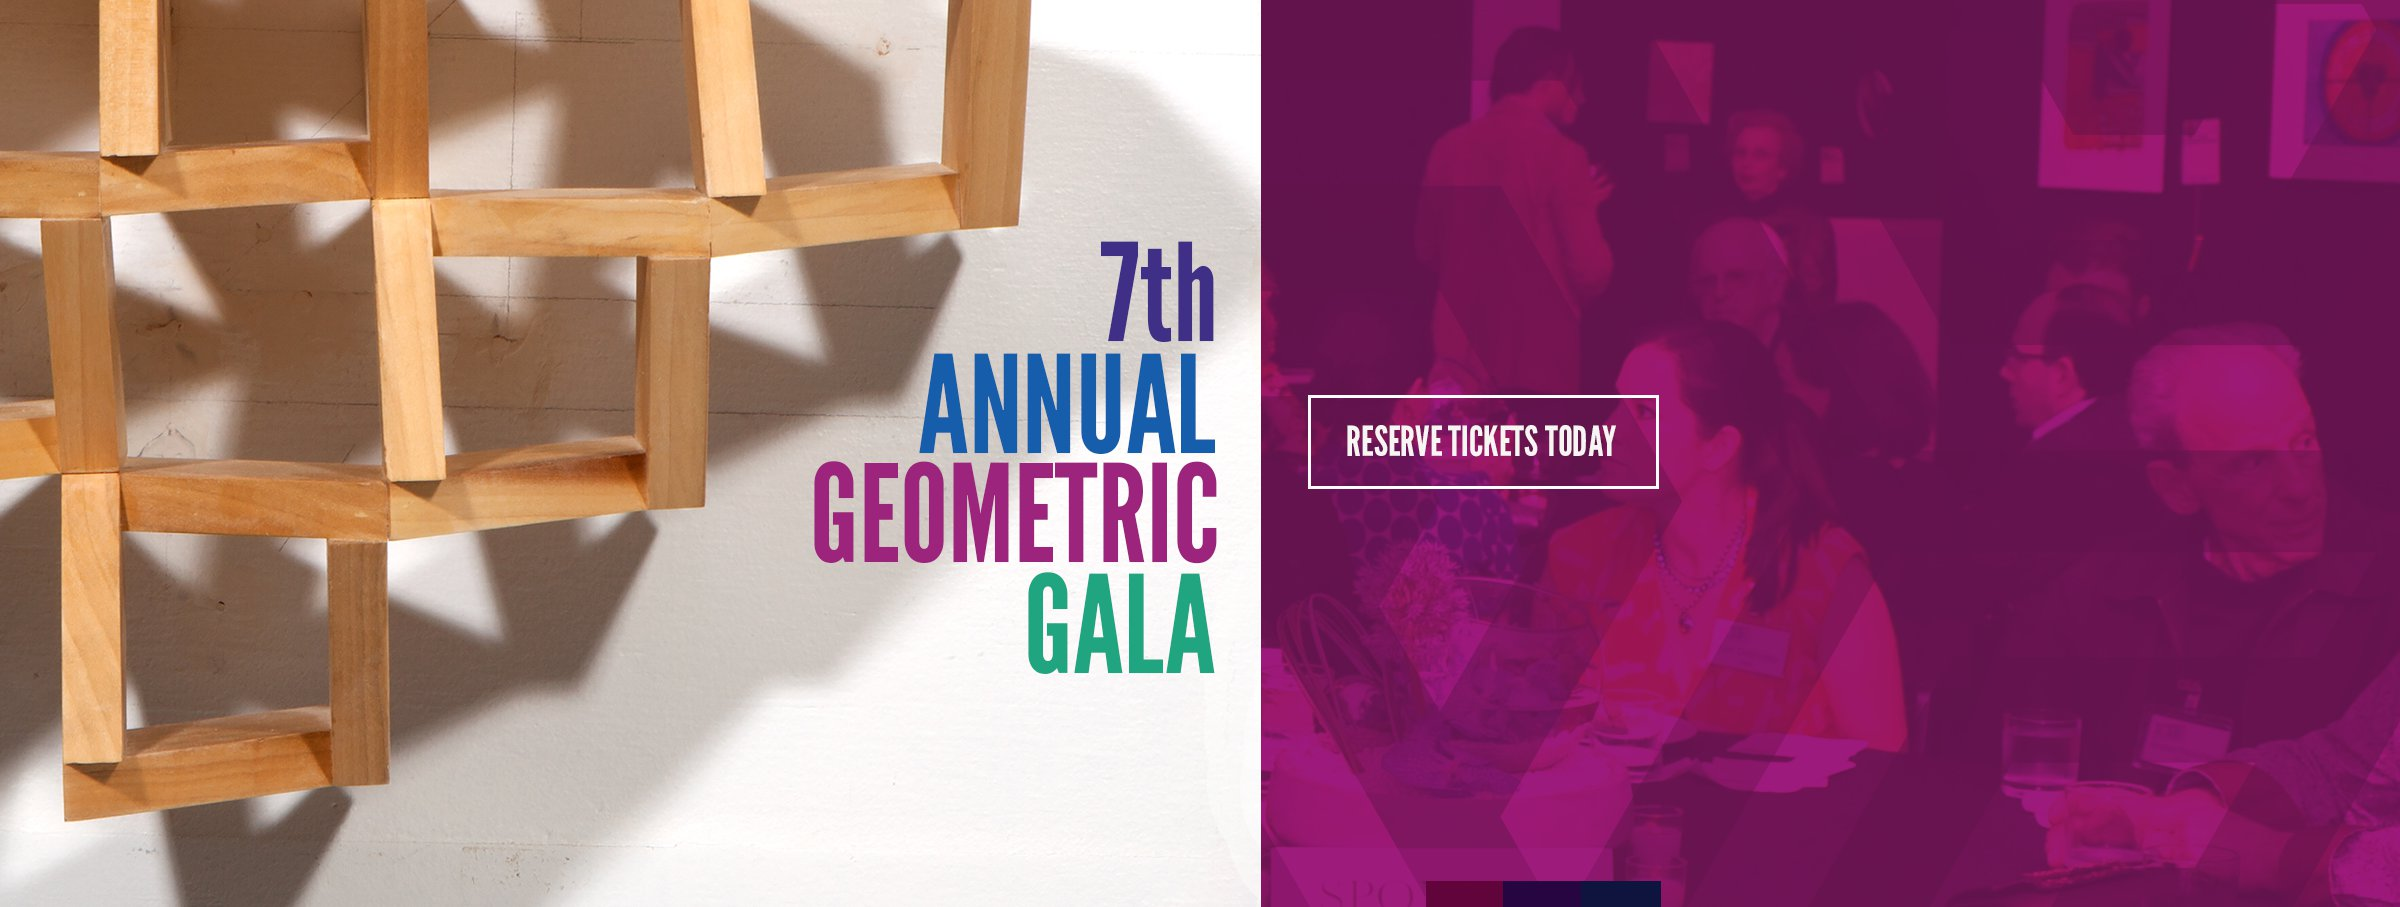 Tickets for the 2015 Geometric Gala